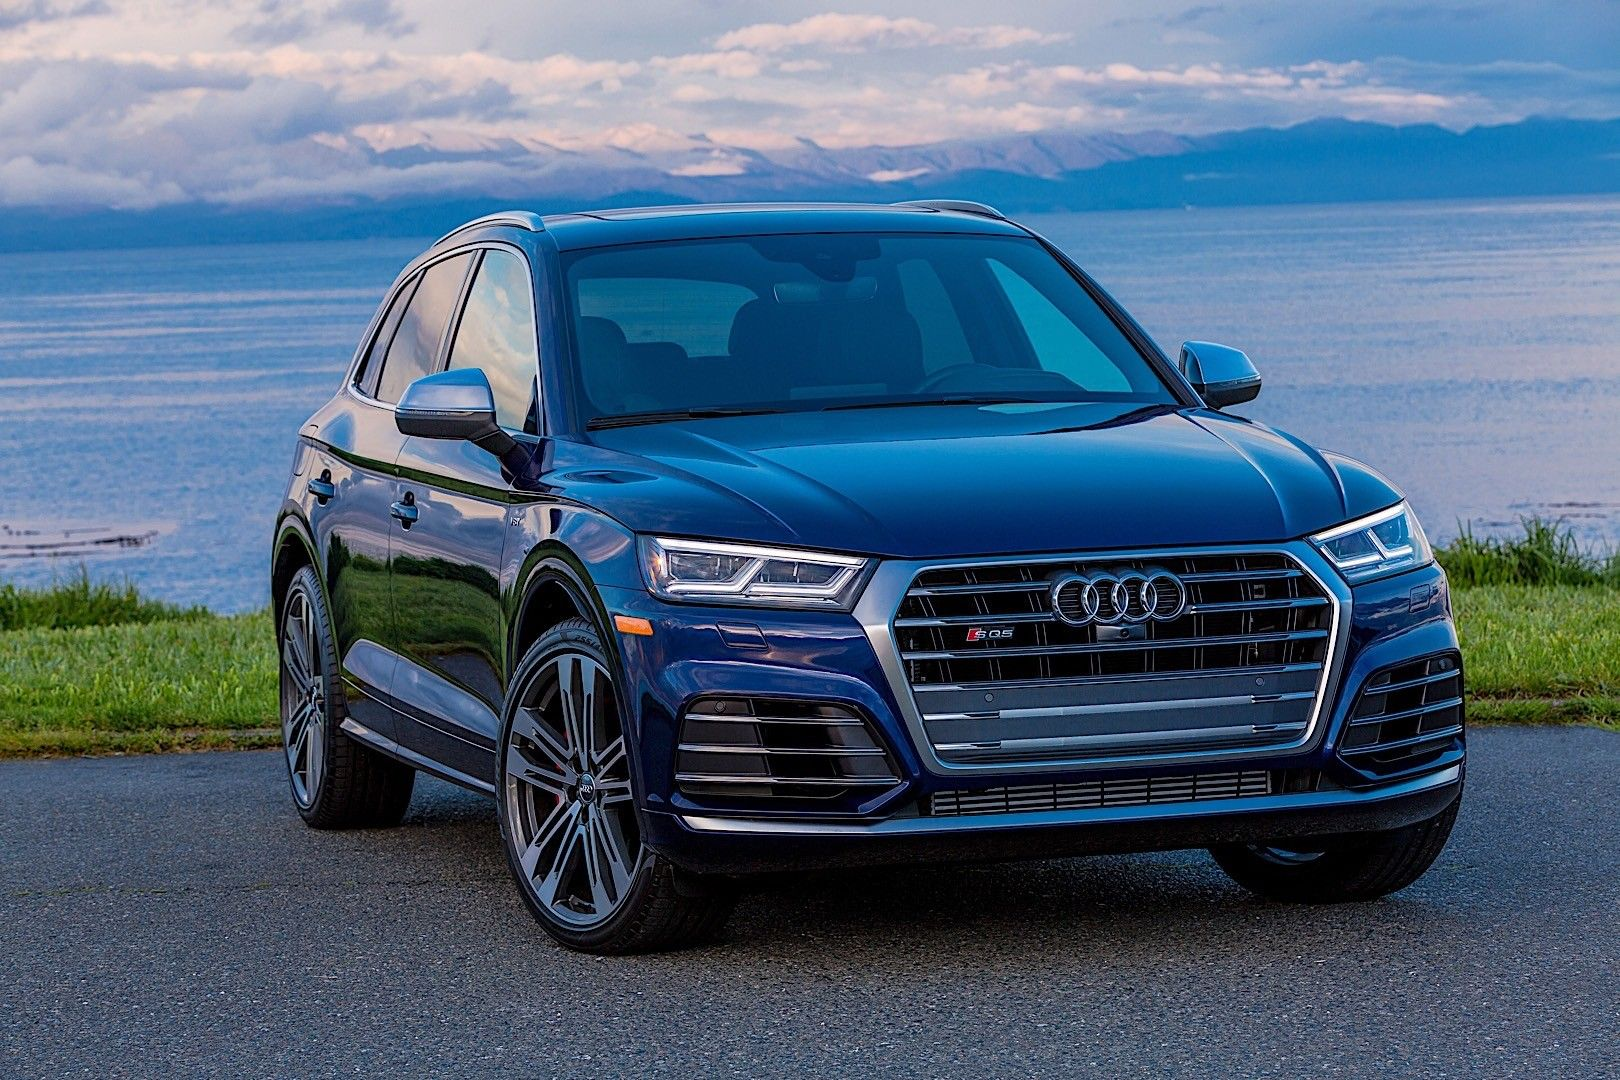 Audi Sq5 Specs Photos 2017 2018 2019 Autoevolution Audi Q5 New Suv Audi